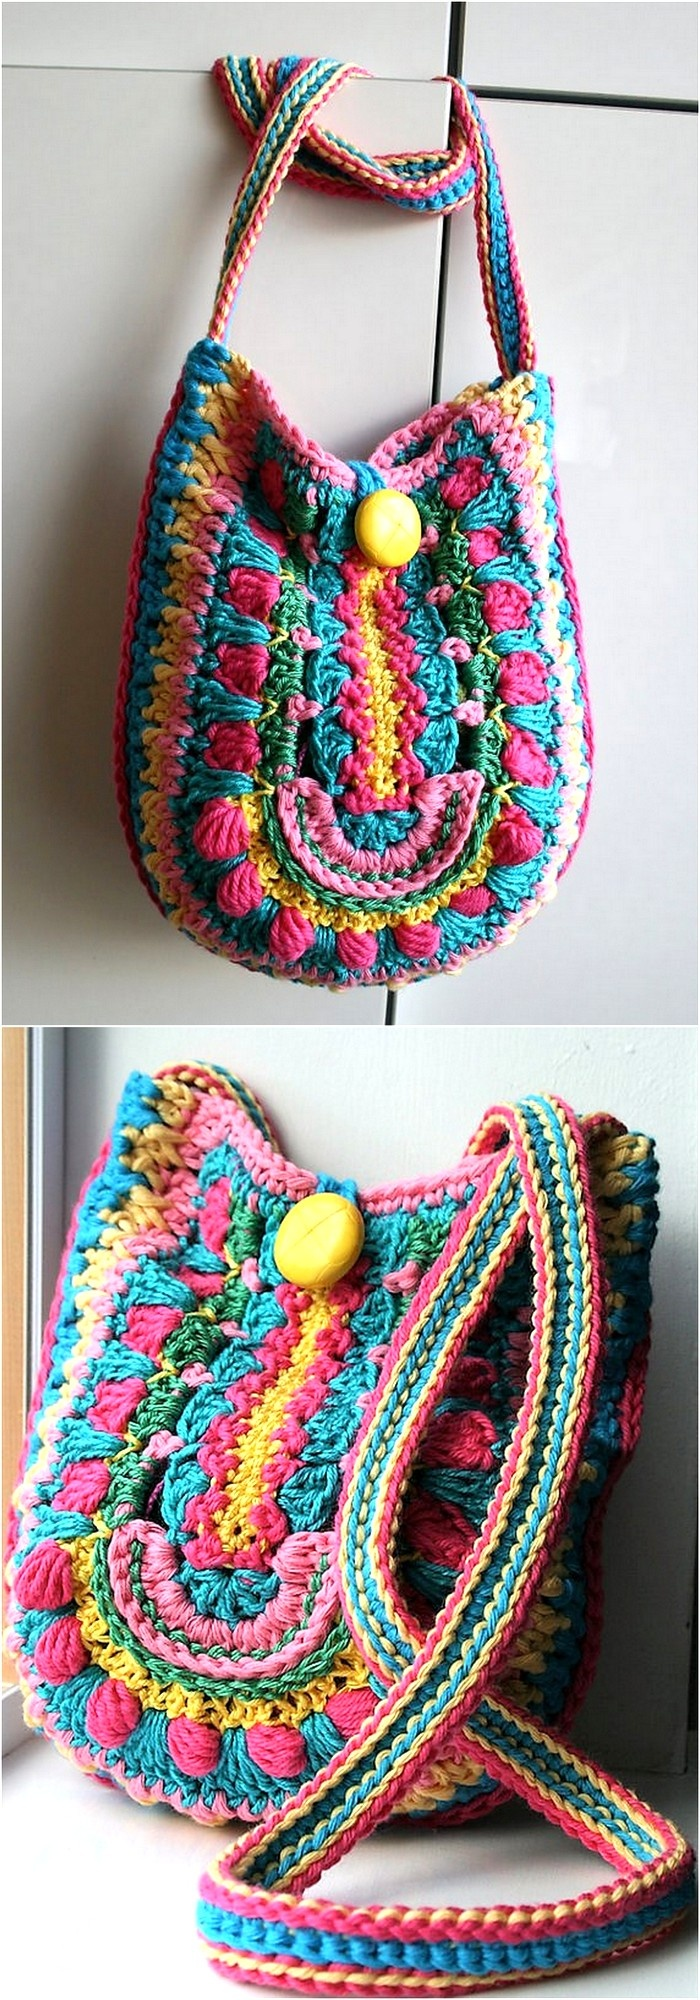 Awesome Handmade Crocheted Bag Patterns | 1001 Crochet